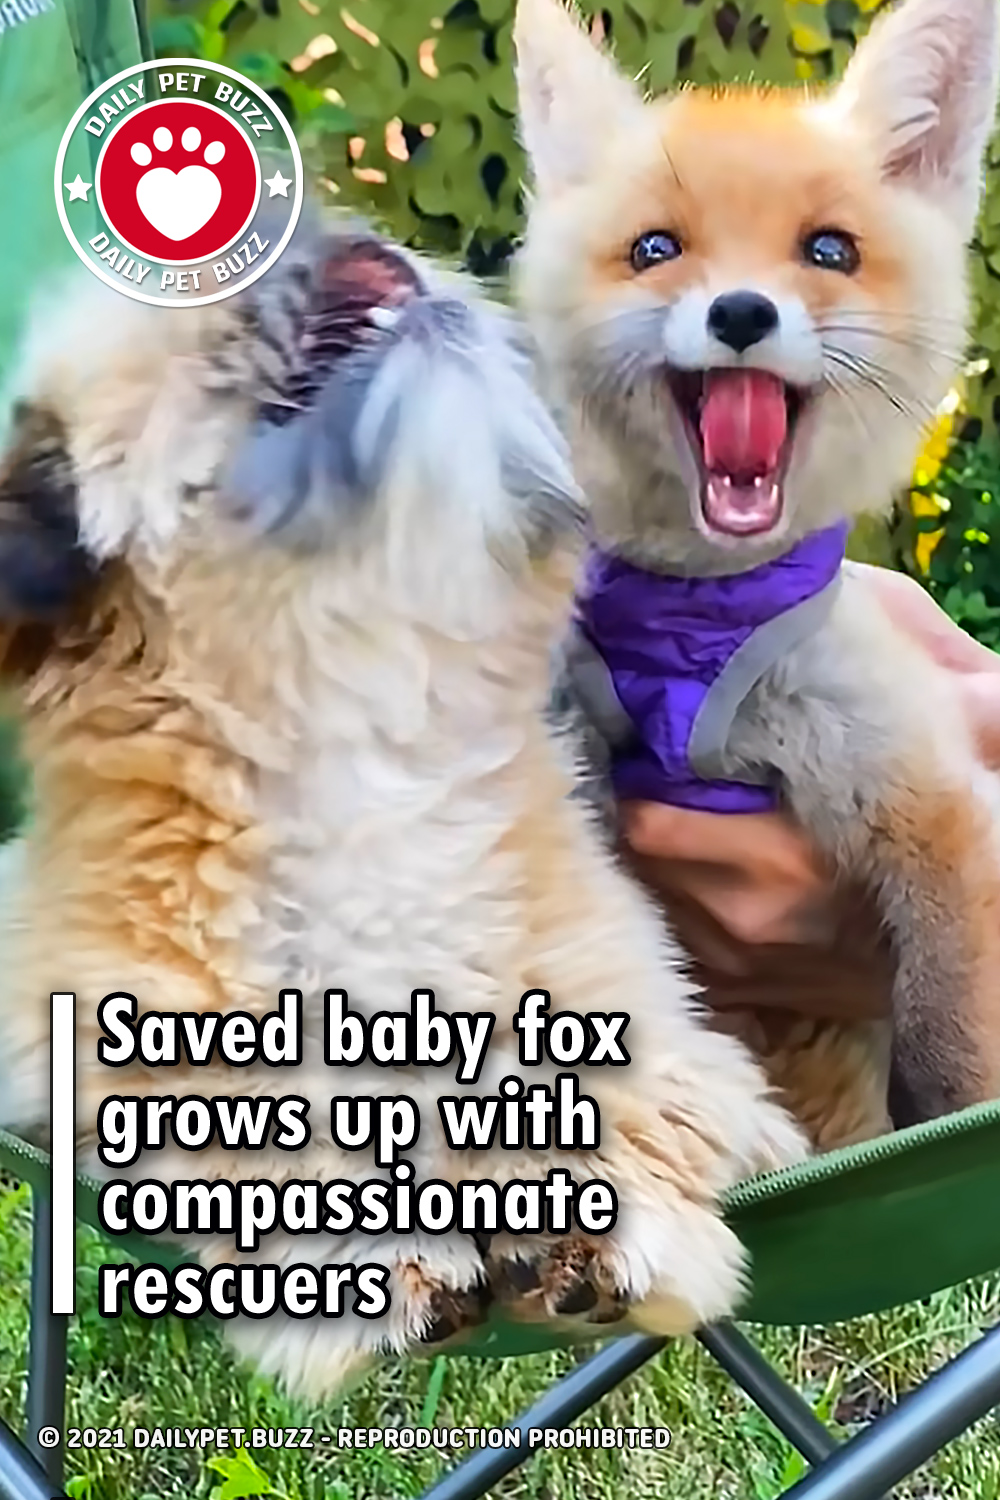 Saved baby fox grows up with compassionate rescuers